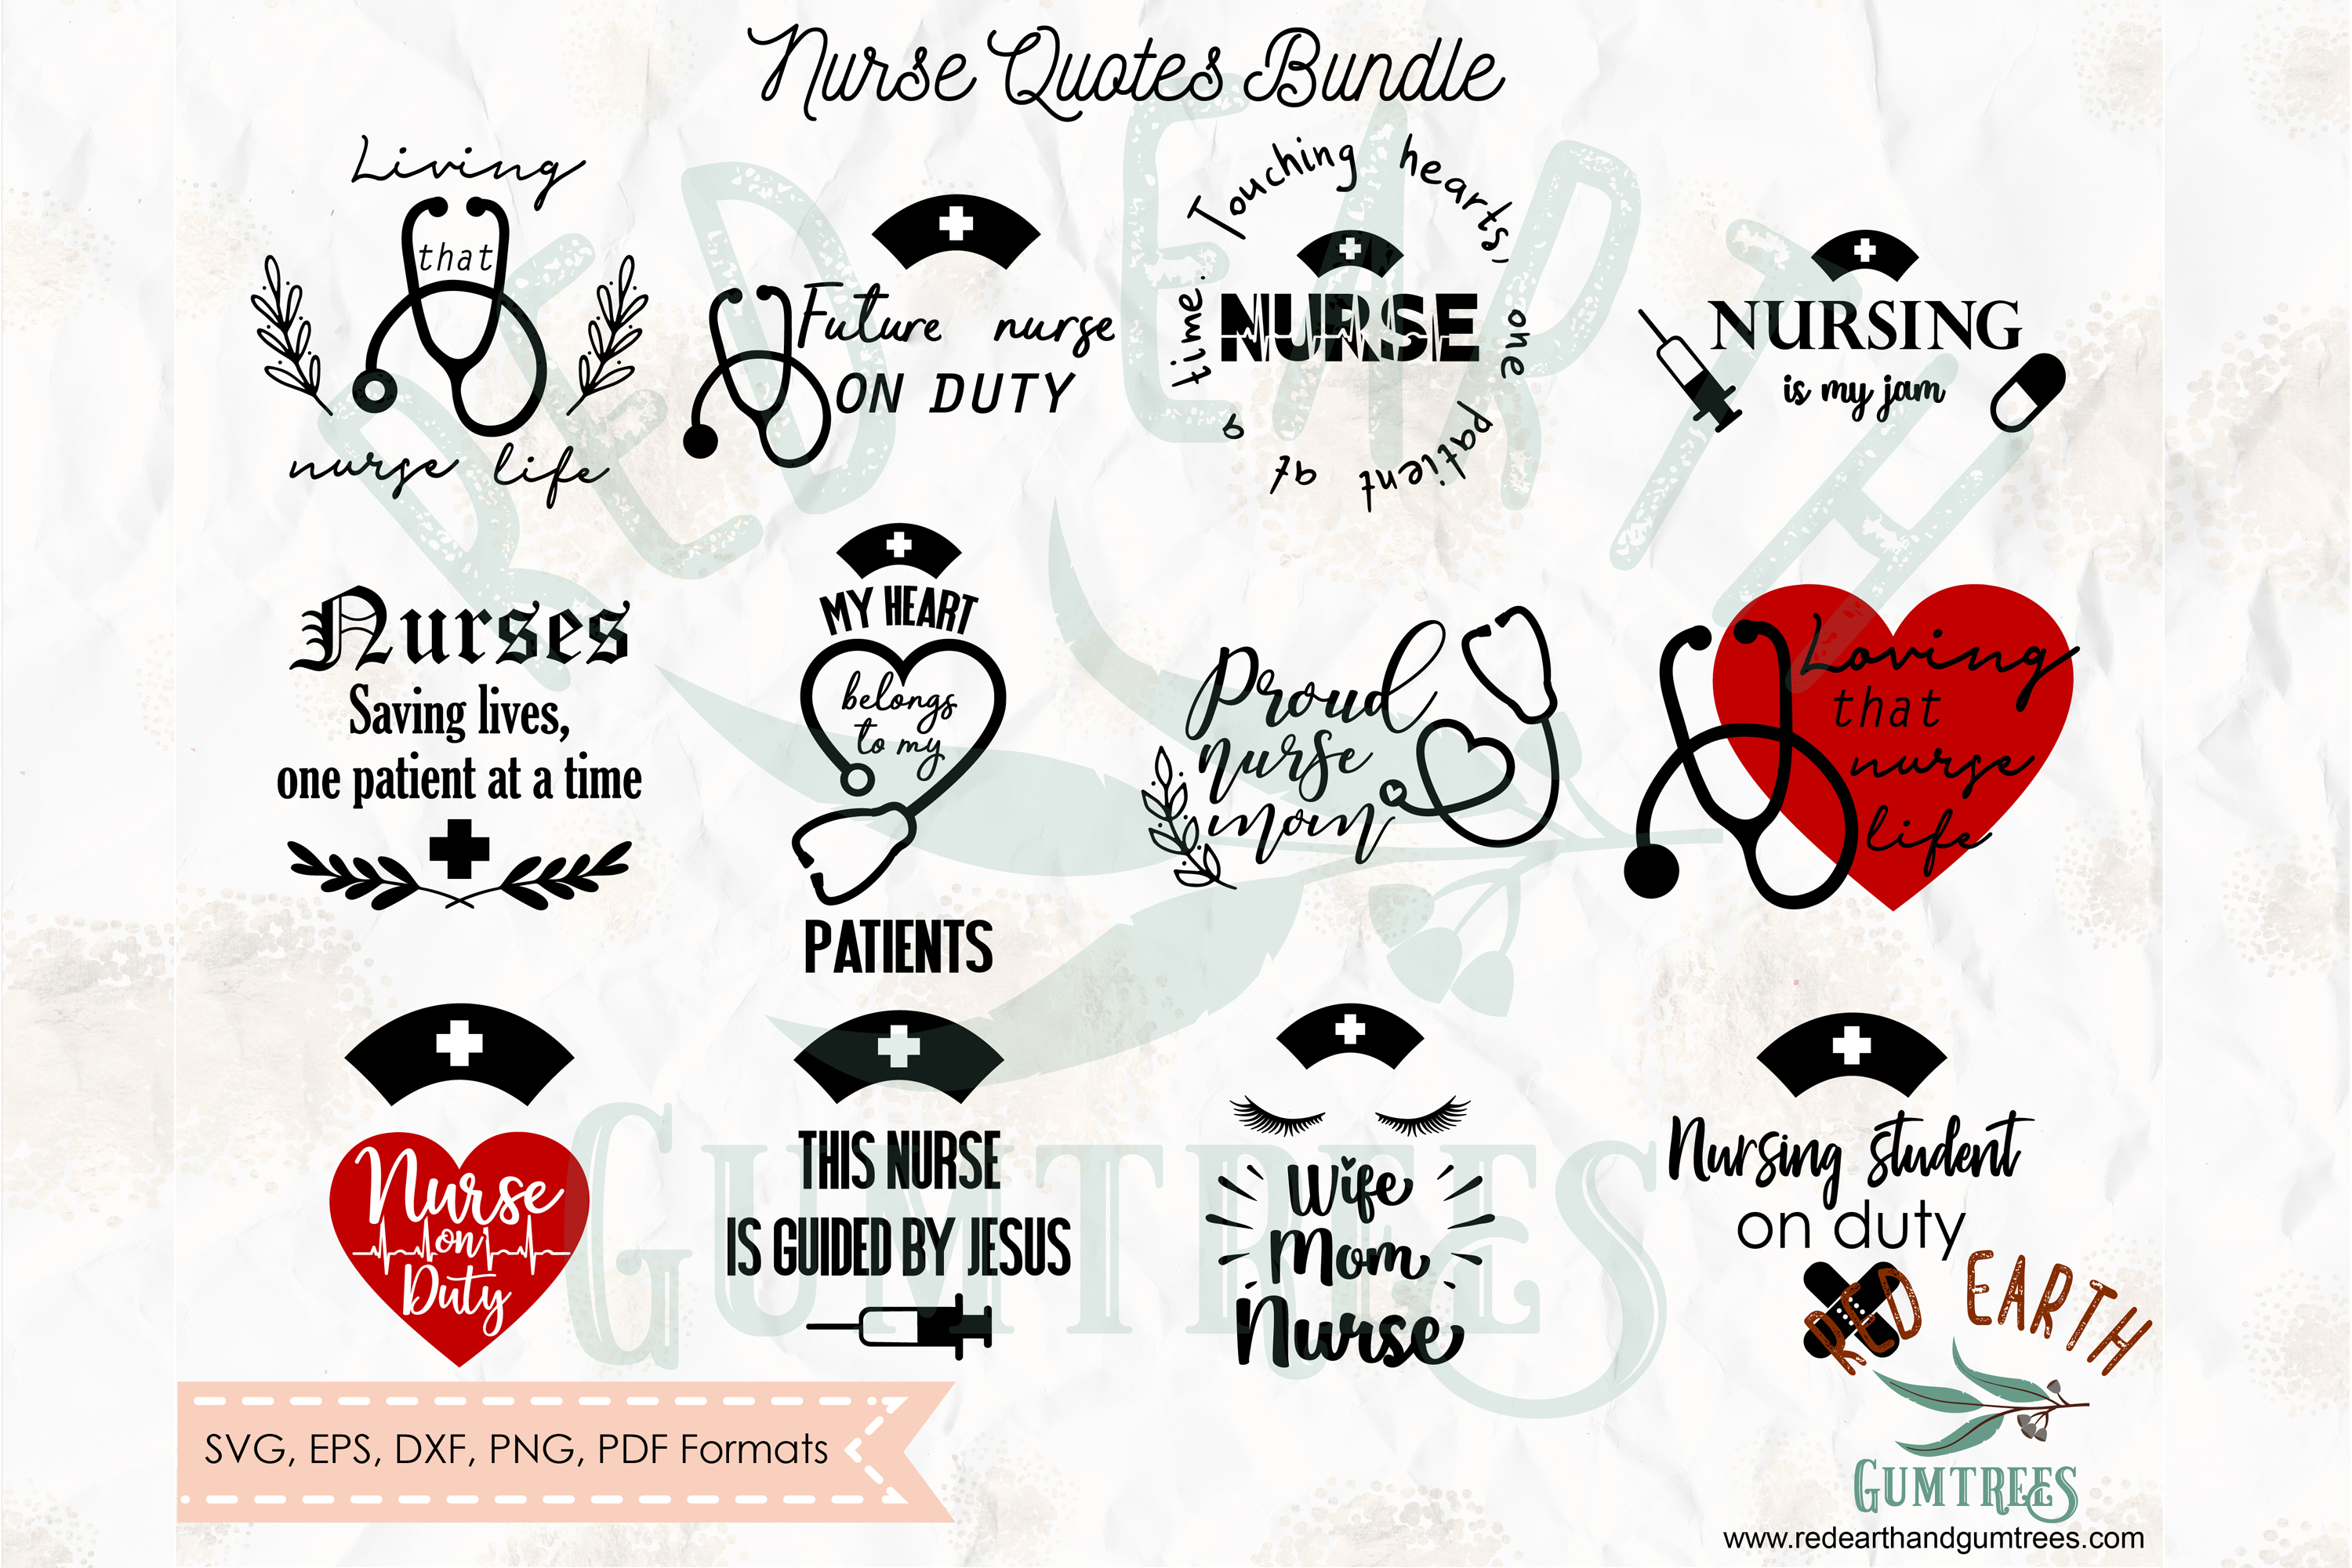 Download Free Nurse And Medical Quotes Bundle Graphic By Redearth And Gumtrees for Cricut Explore, Silhouette and other cutting machines.